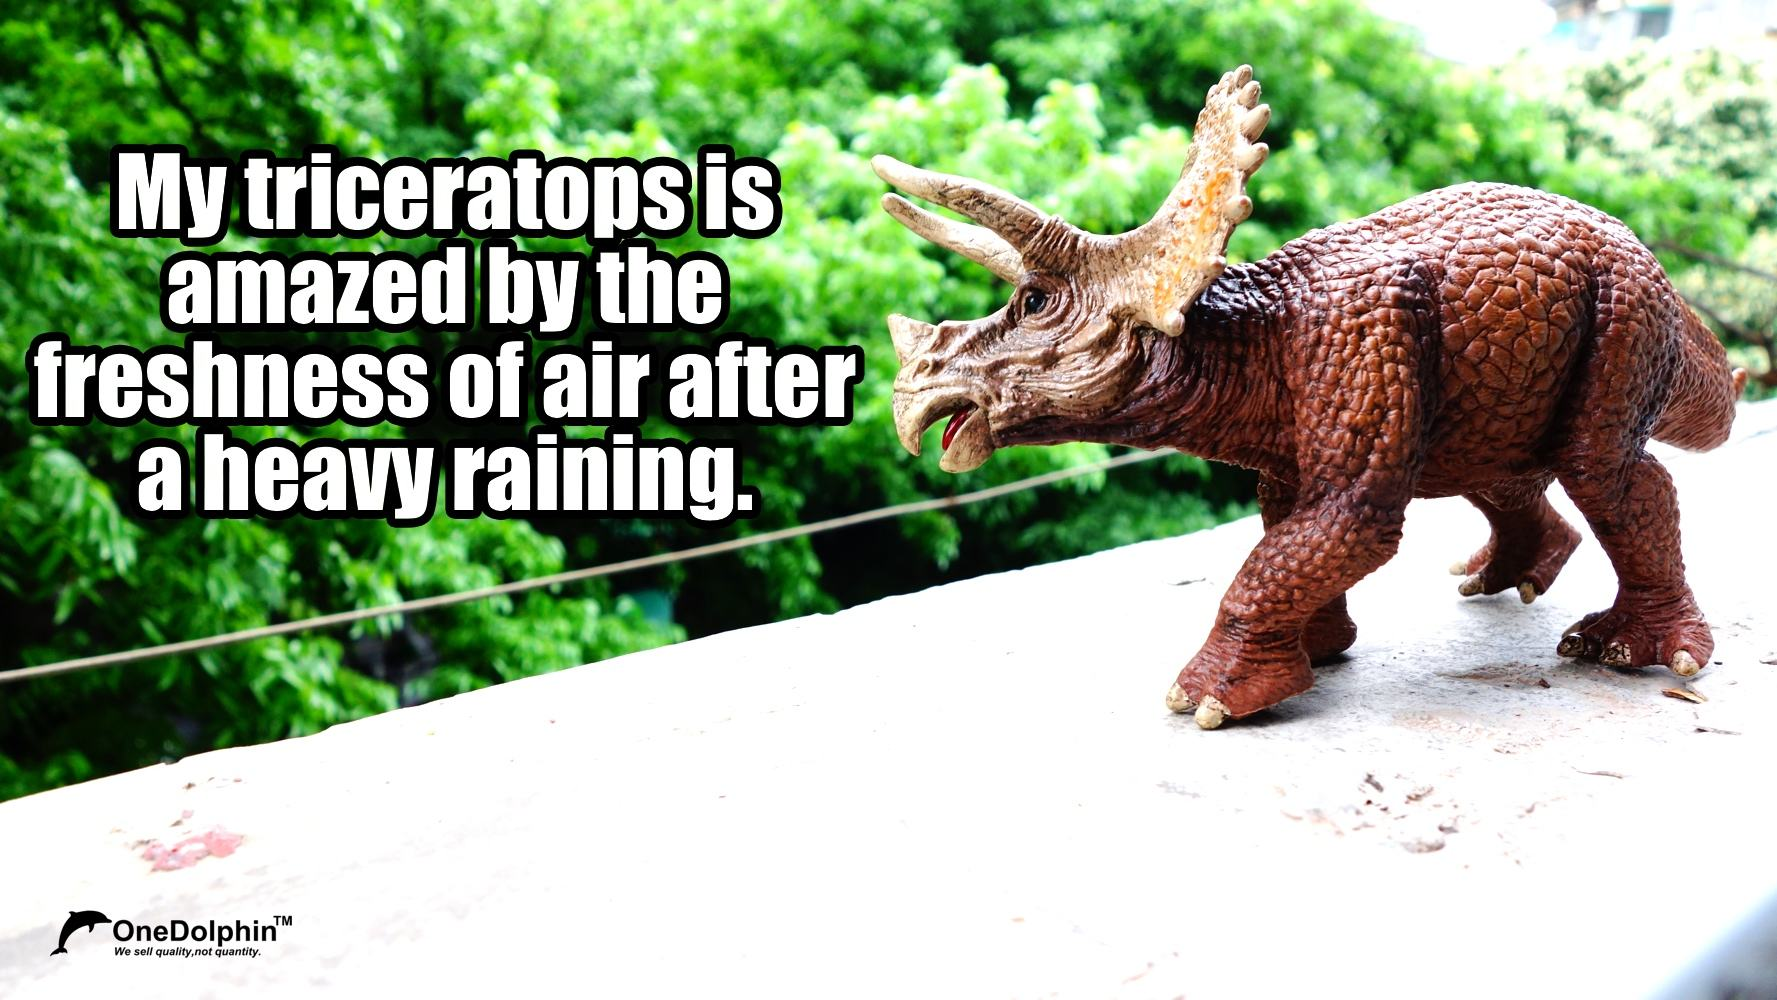 My triceratops is amazed by the freshness of air after a heavy raining.